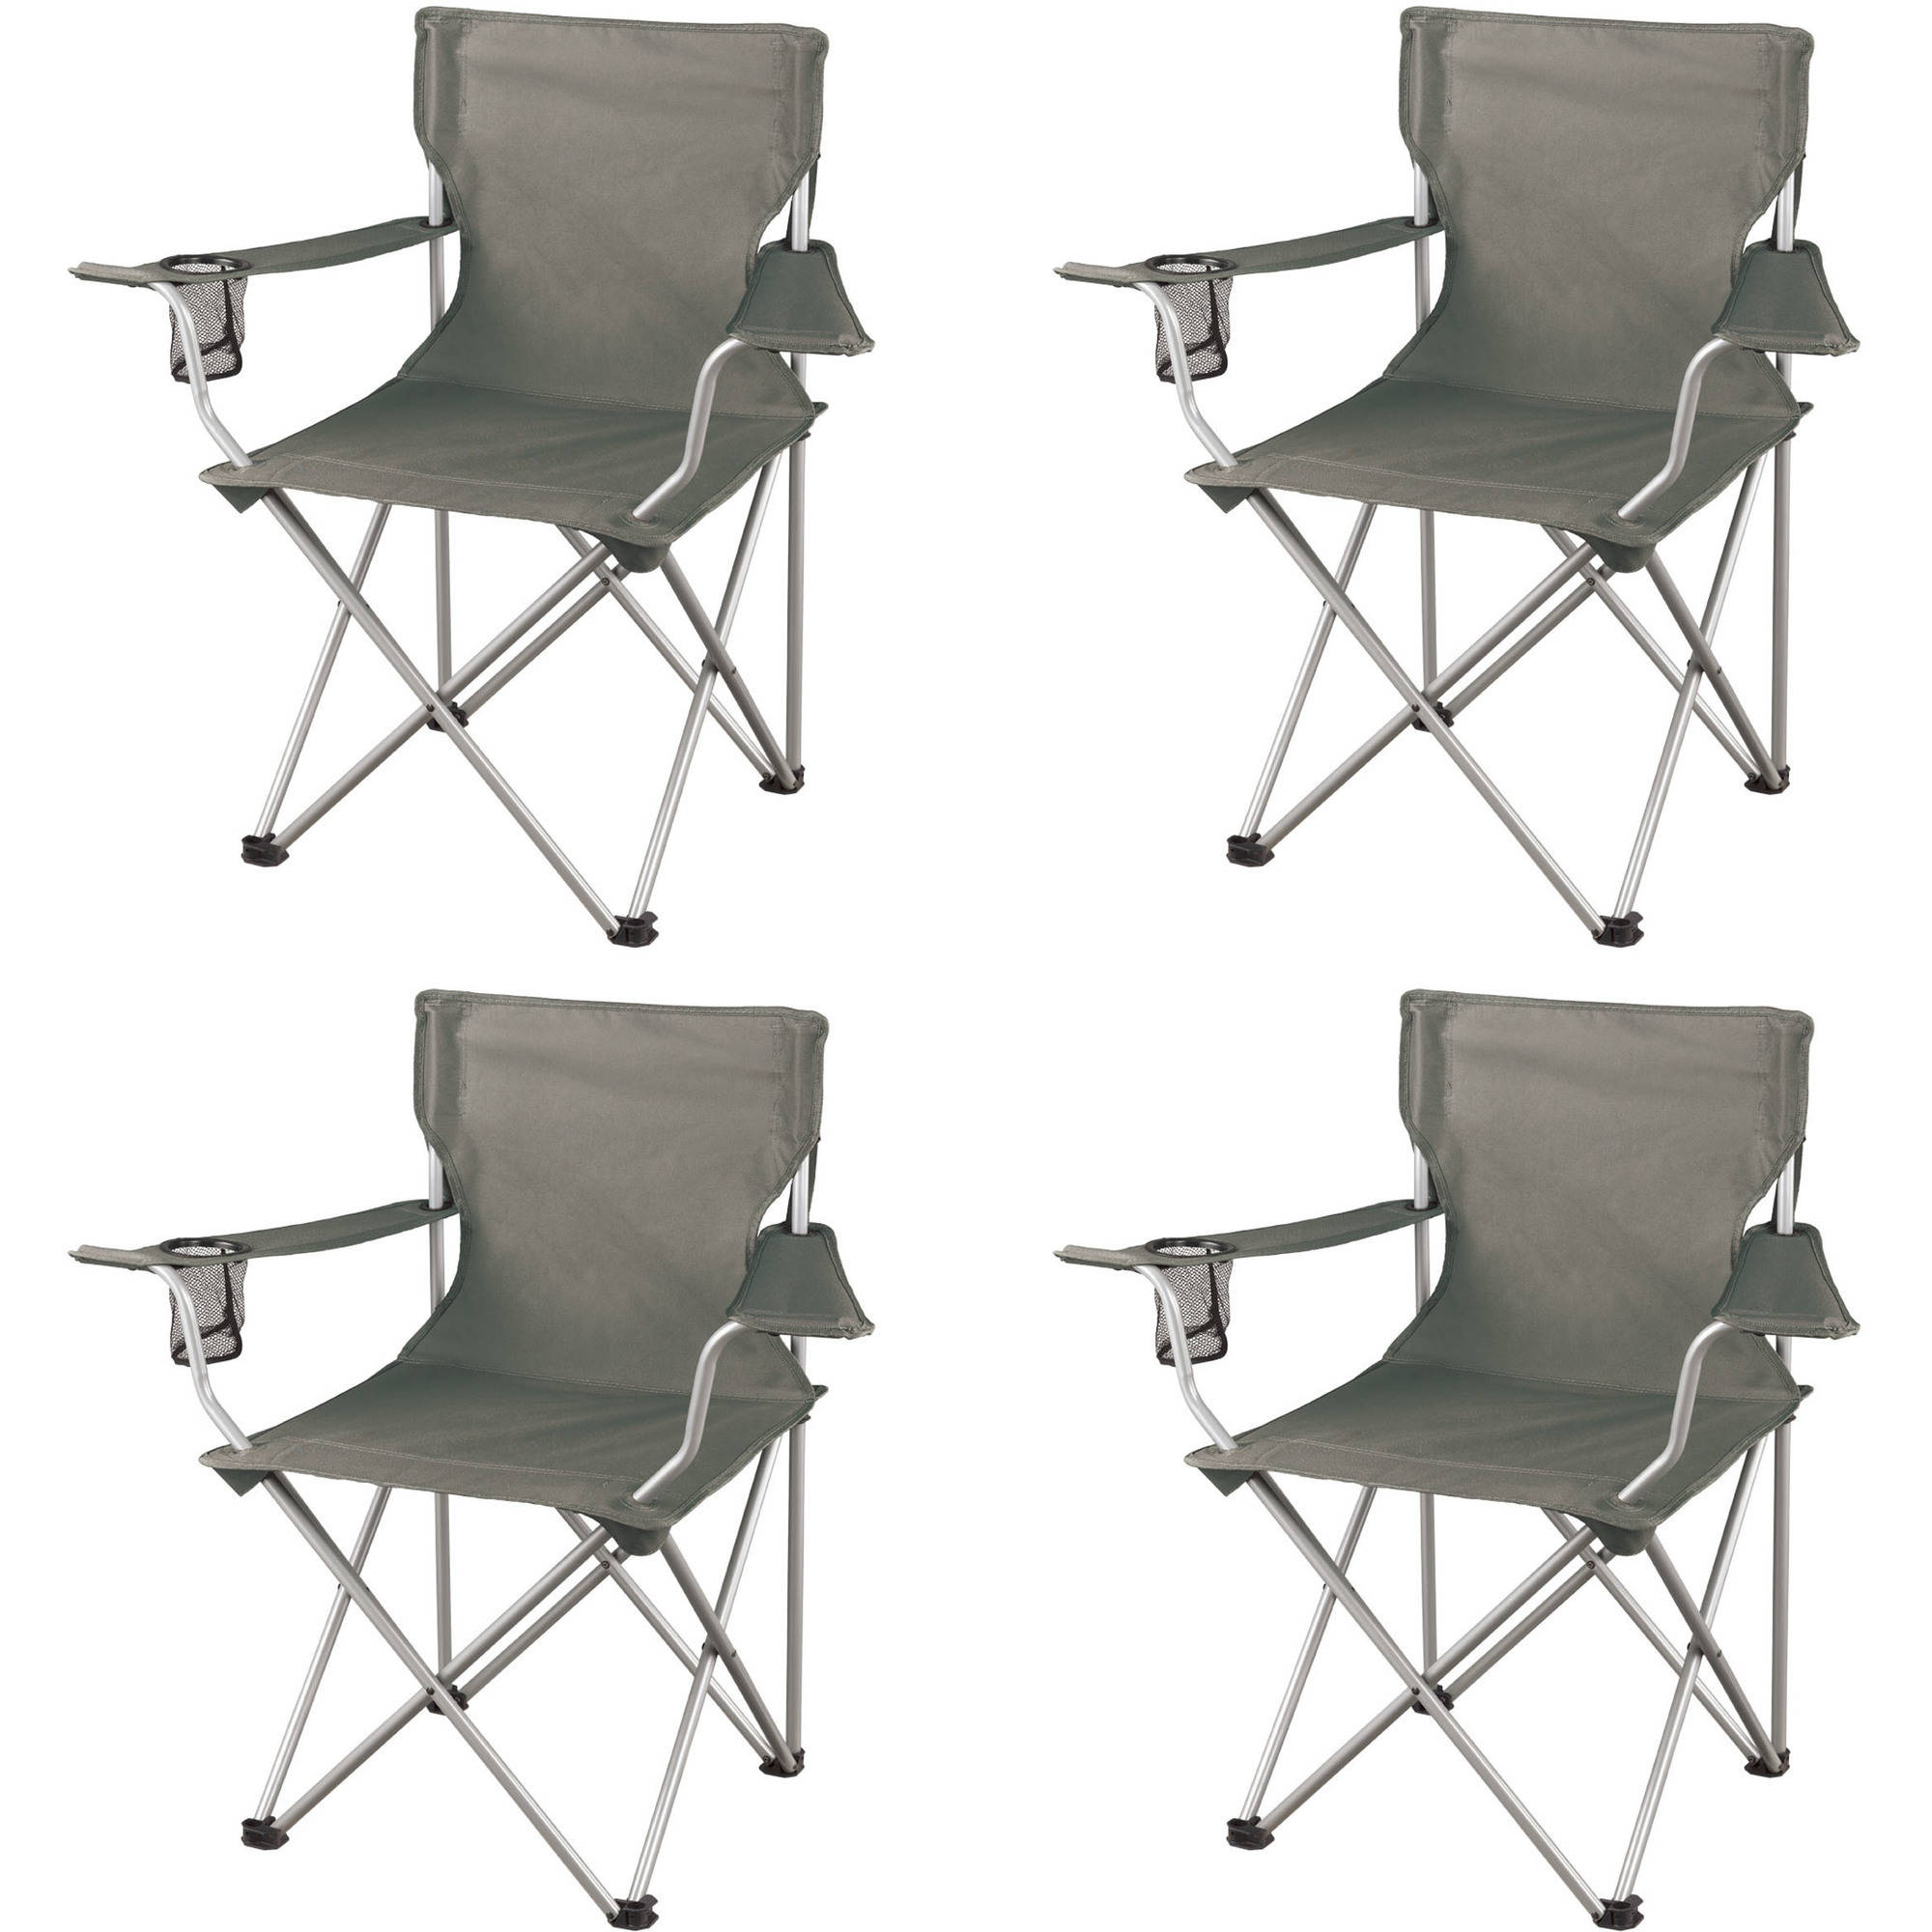 lewis and clark camping chairs shower tub chair transfer bench ozark trail classic folding camp set of 4